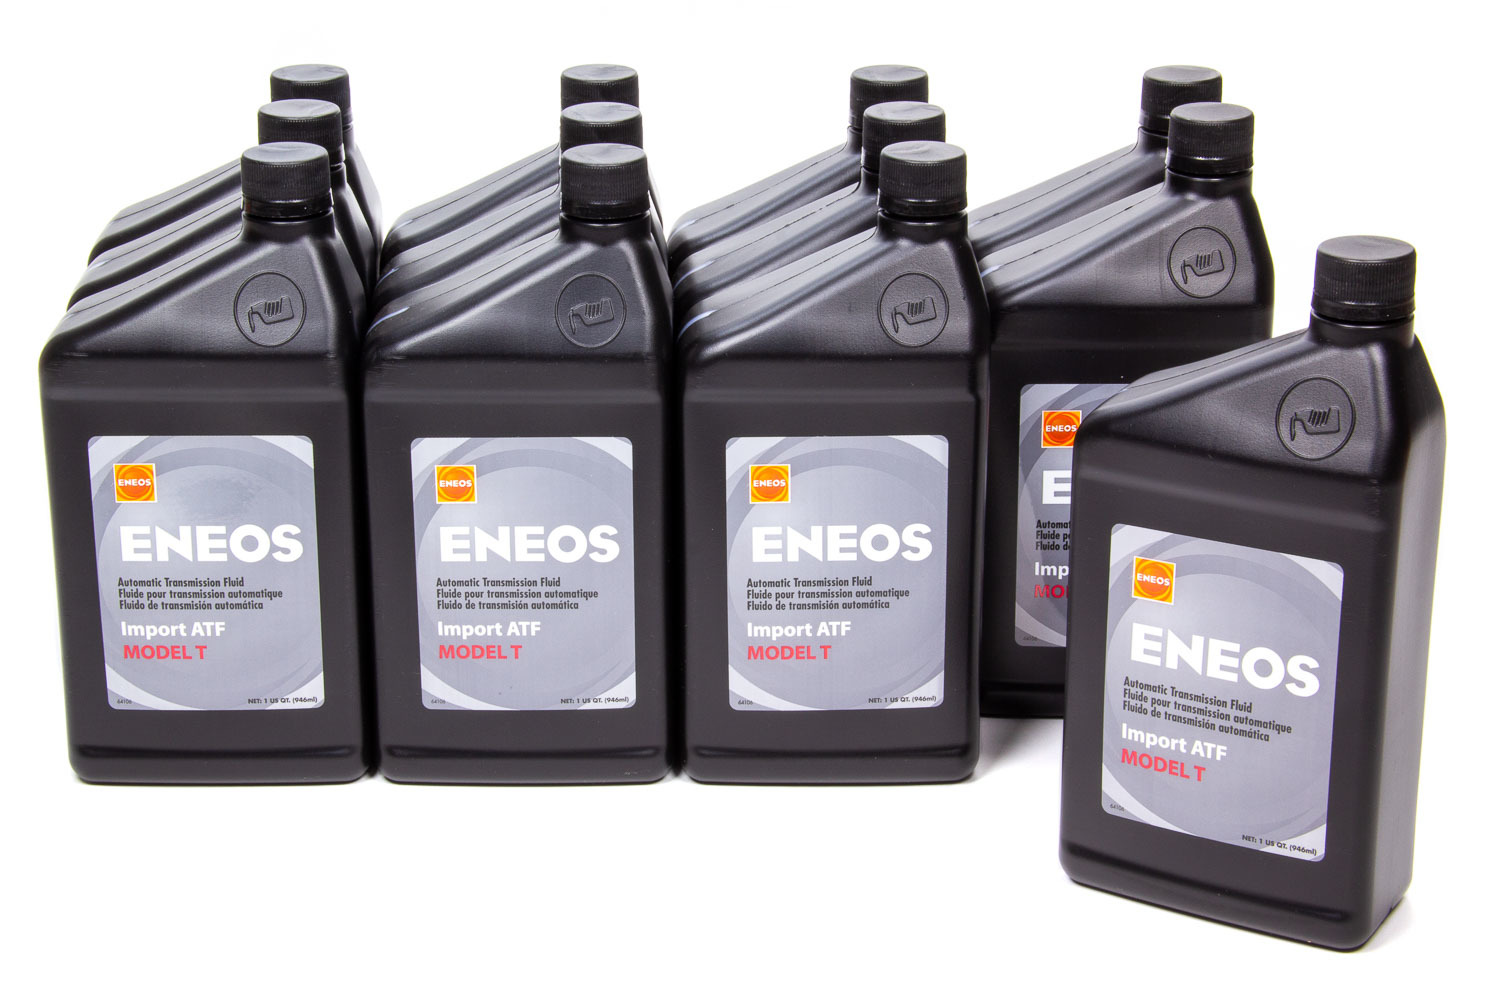 Eneos 3104-301 Transmission Fluid, Import ATF, Model T, Synthetic, 1 qt Bottle, Toyota, Set of 12